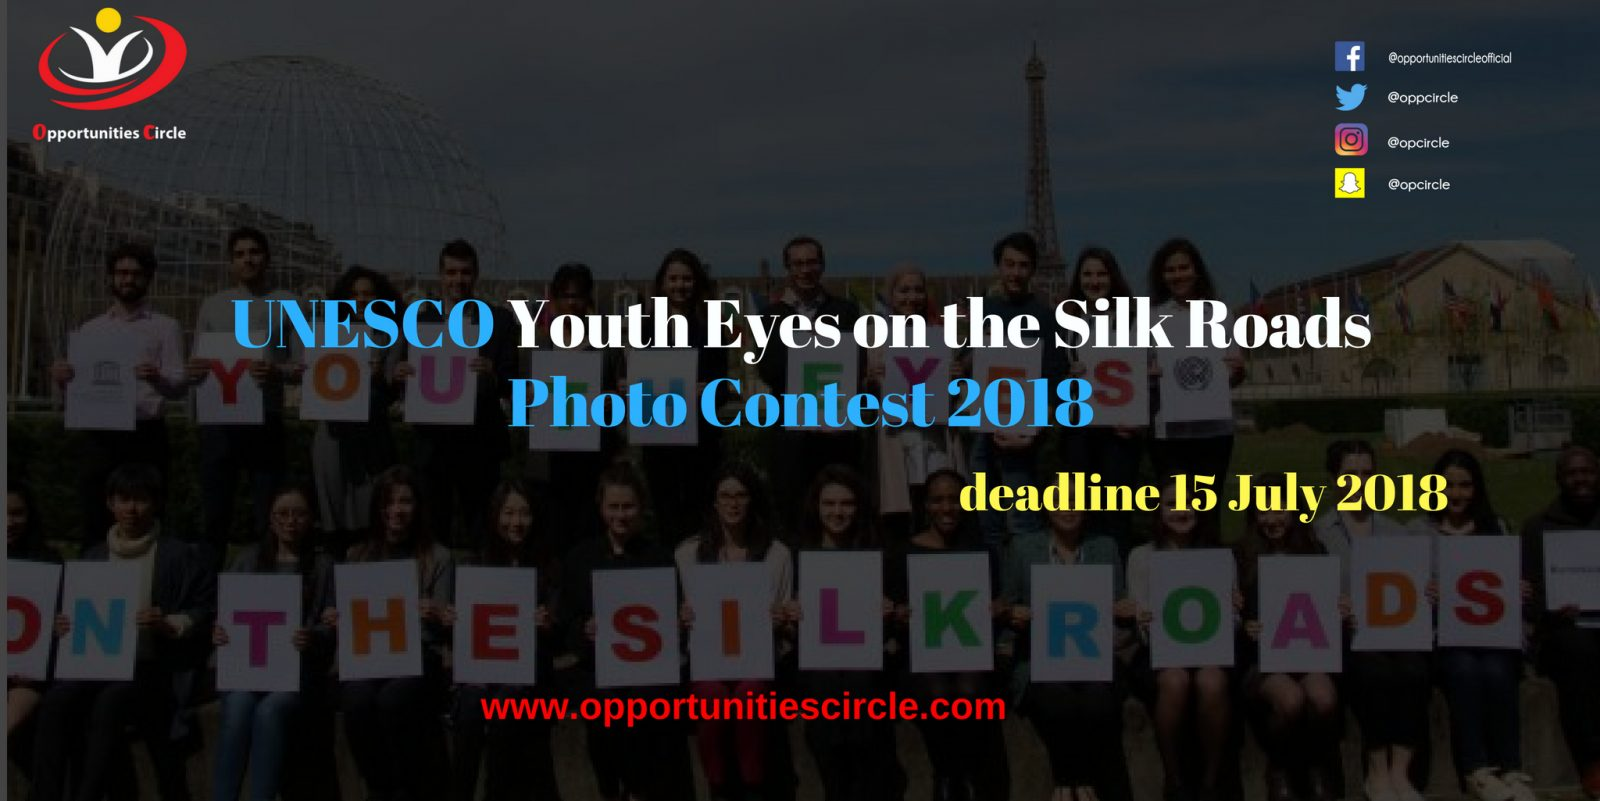 UNESCO photo contest 2018 - UNESCO Youth Eyes on the Silk Roads International Photo Contest 2018